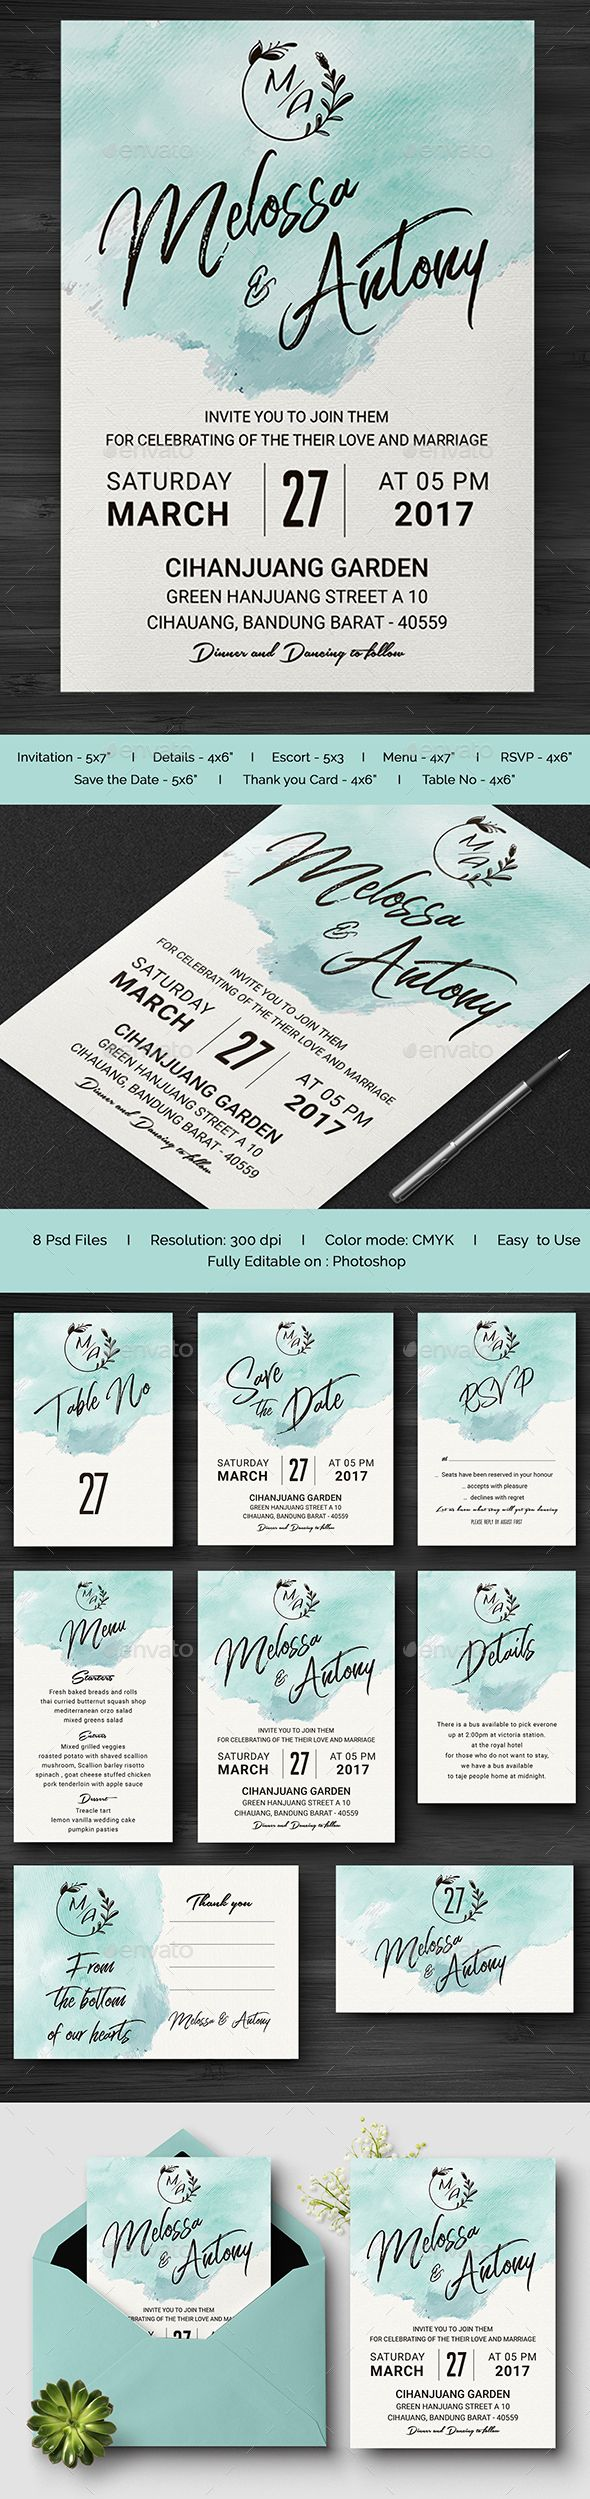 wedding invitation wording with no reception%0A Best     Wedding invitation templates ideas on Pinterest   Diy wedding  stationery  Wedding invitation wording templates and Wedding invitation  wording